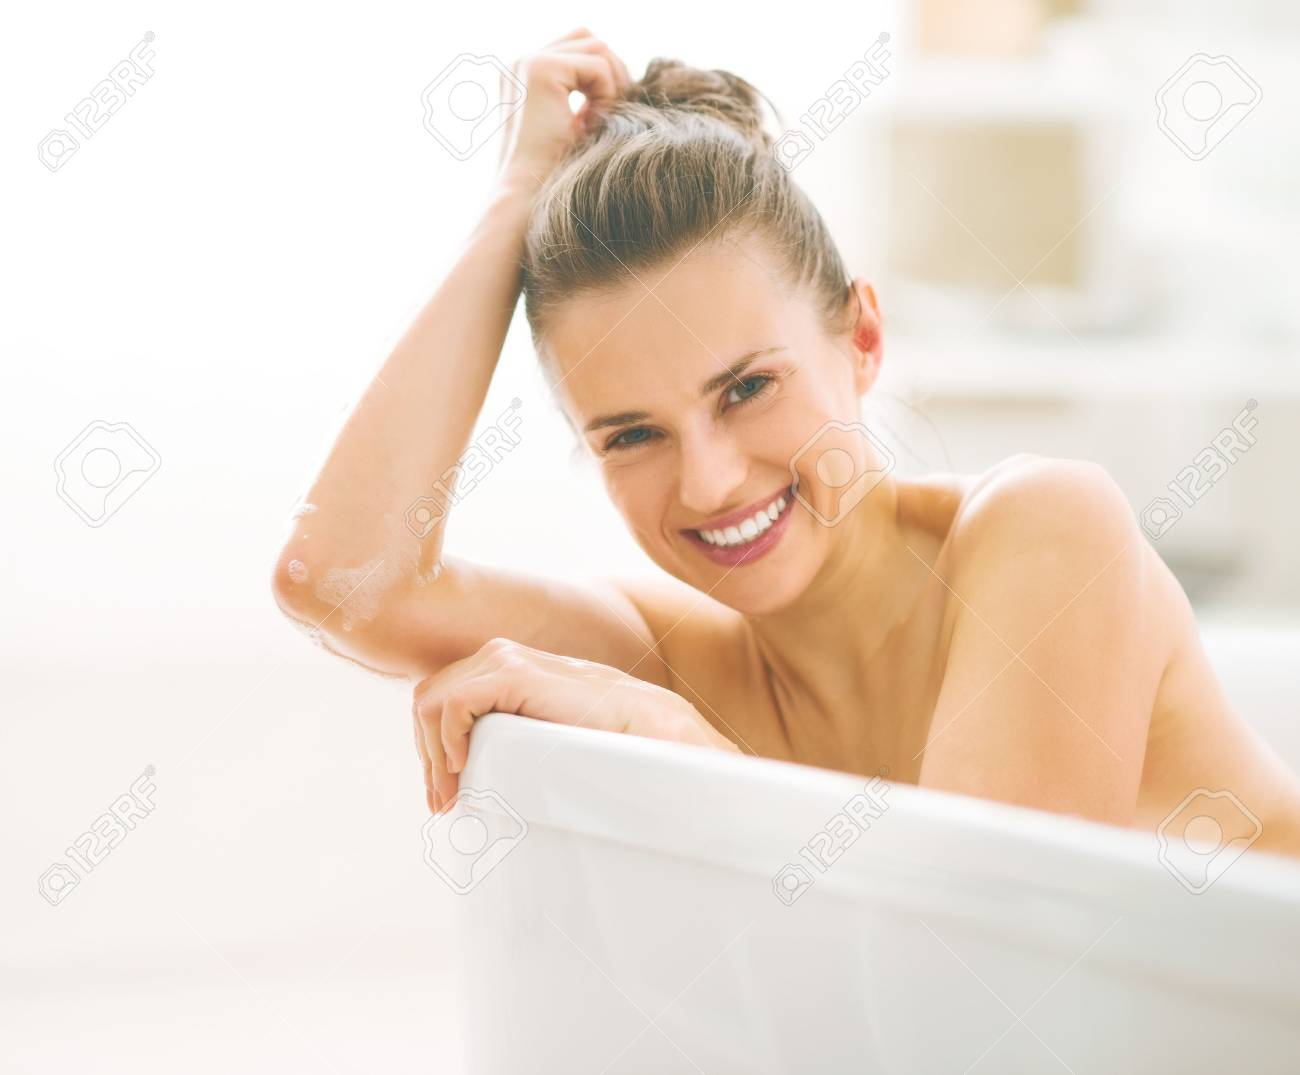 Portrait of smiling young woman in bathtub - 80681552